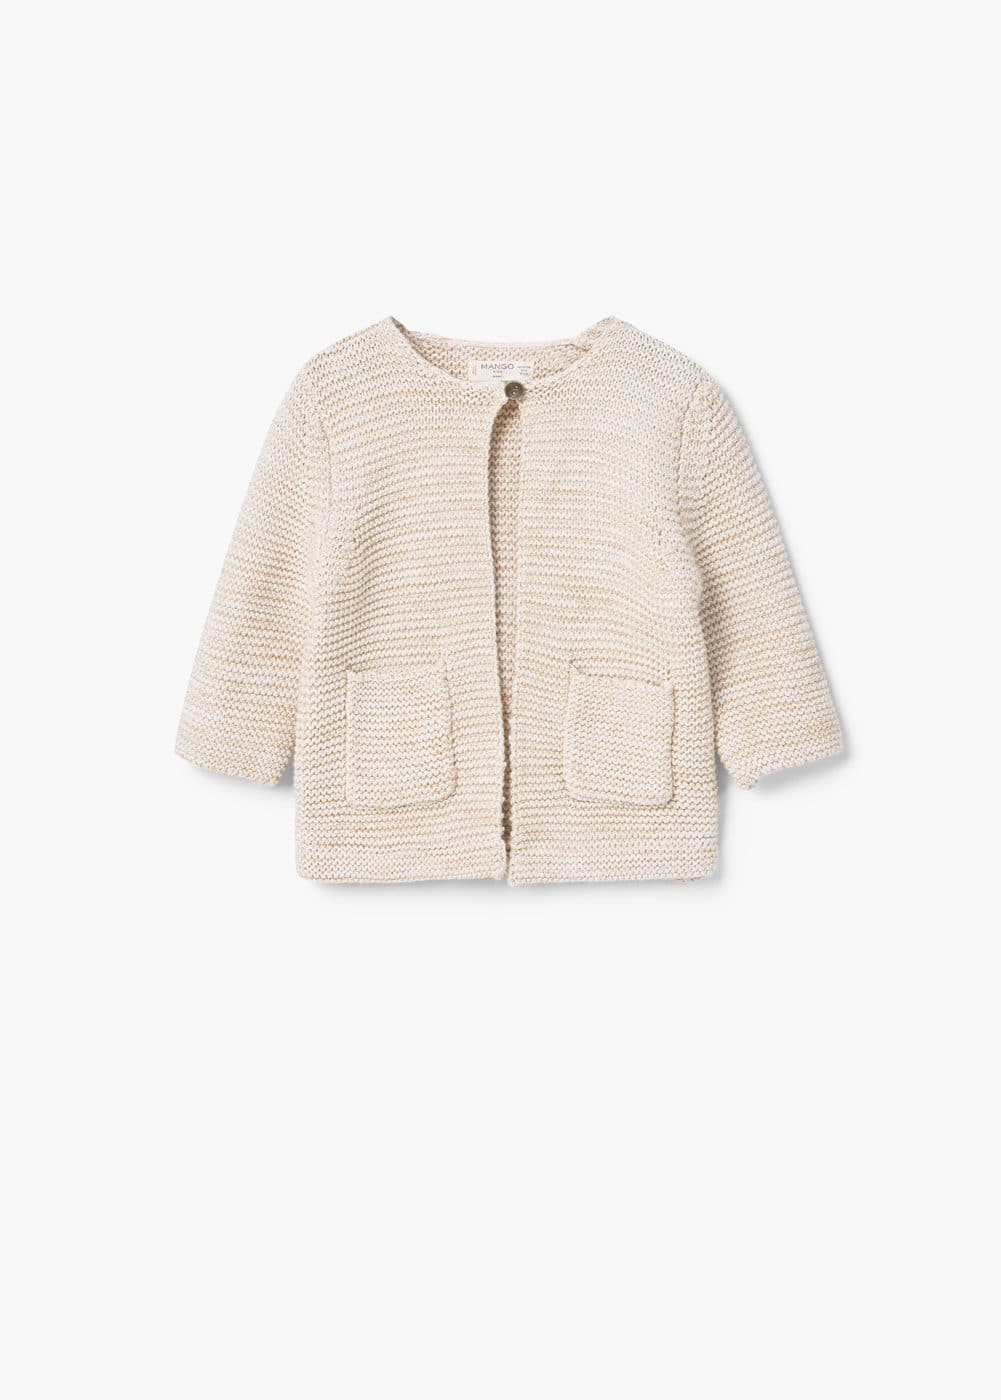 Strickjacke mit metallic-finish | MANGO KIDS